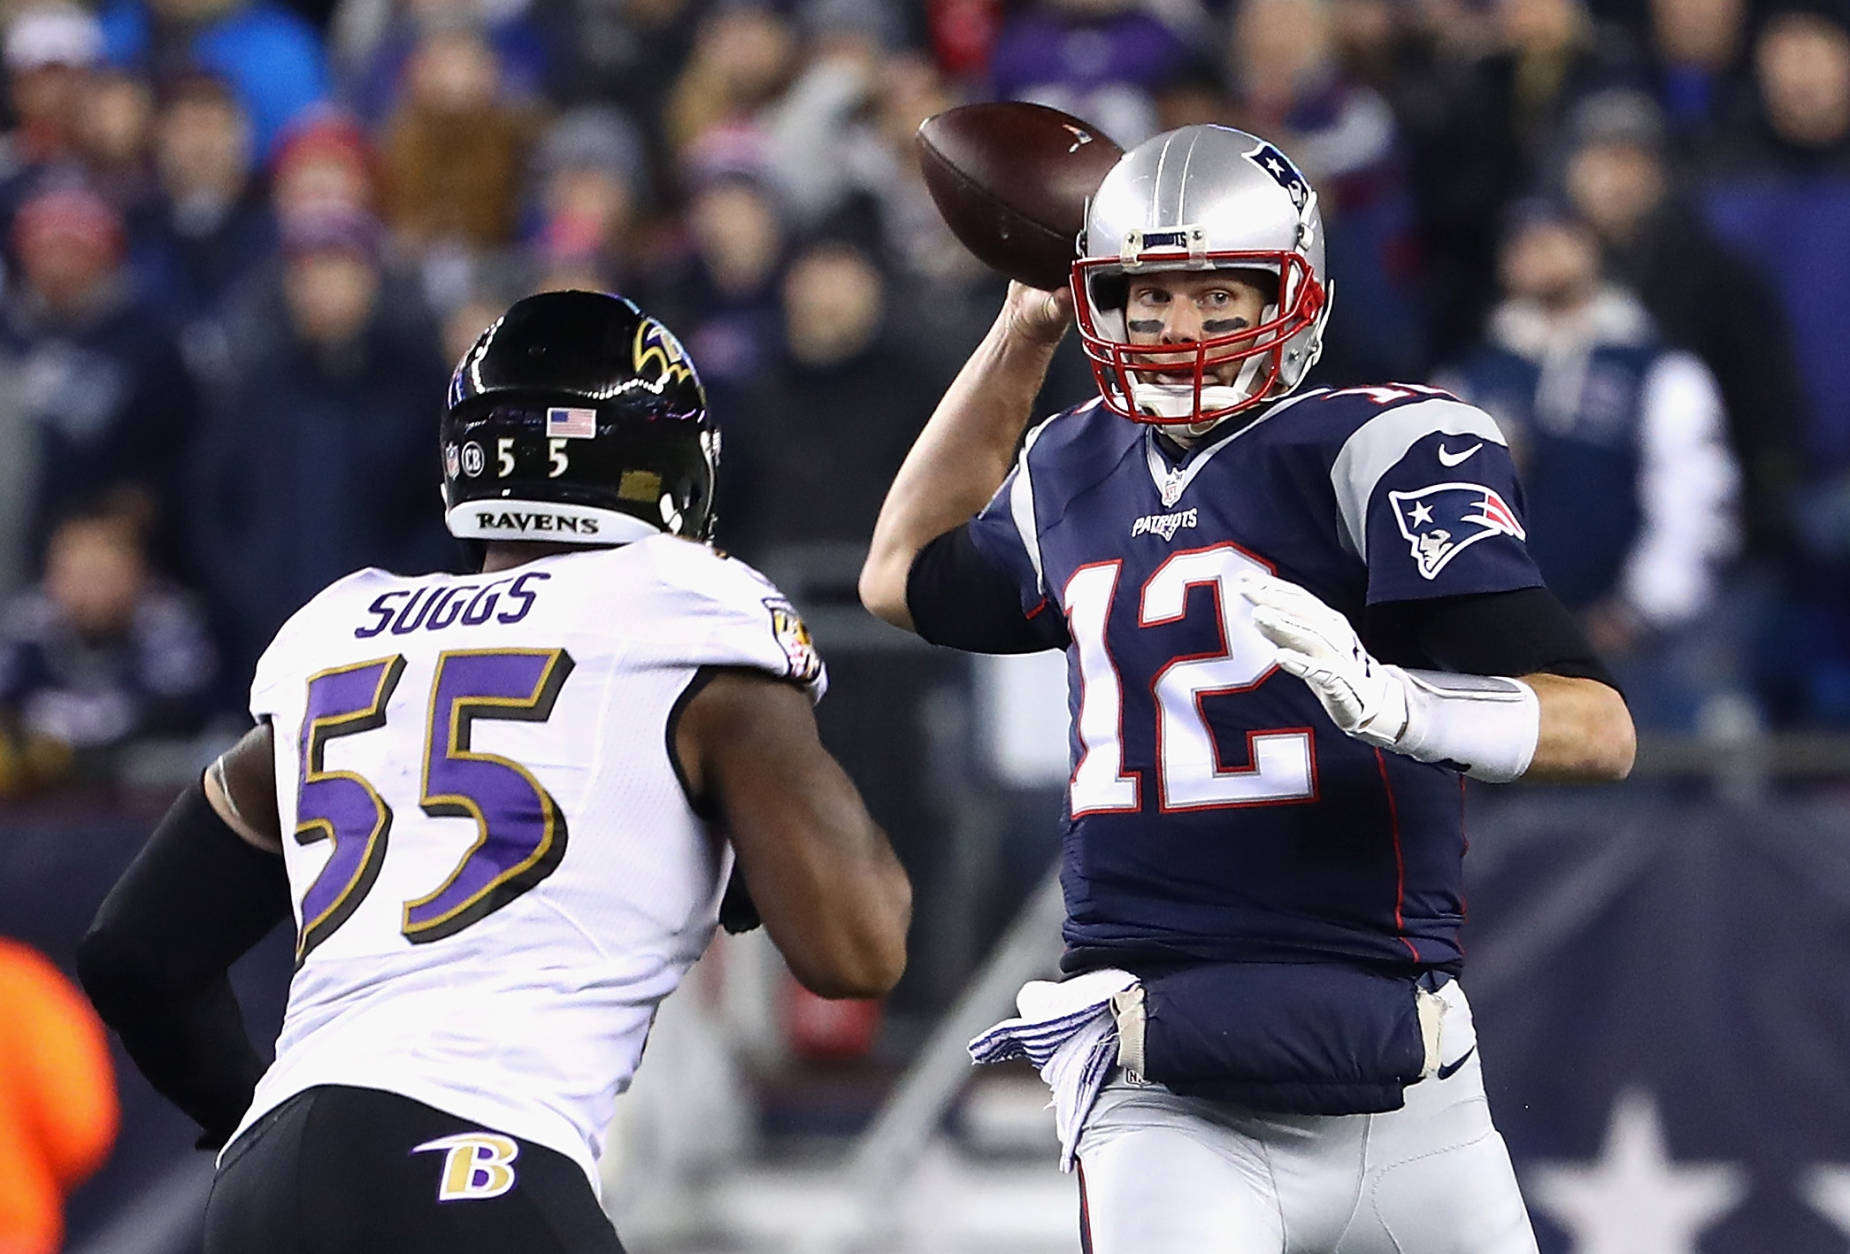 FOXBORO, MA - DECEMBER 12:  Tom Brady #12 of the New England Patriots throws a pass as he is pressured by Terrell Suggs #55 of the Baltimore Ravens during the first half of their game at Gillette Stadium on December 12, 2016 in Foxboro, Massachusetts.  (Photo by Adam Glanzman/Getty Images)